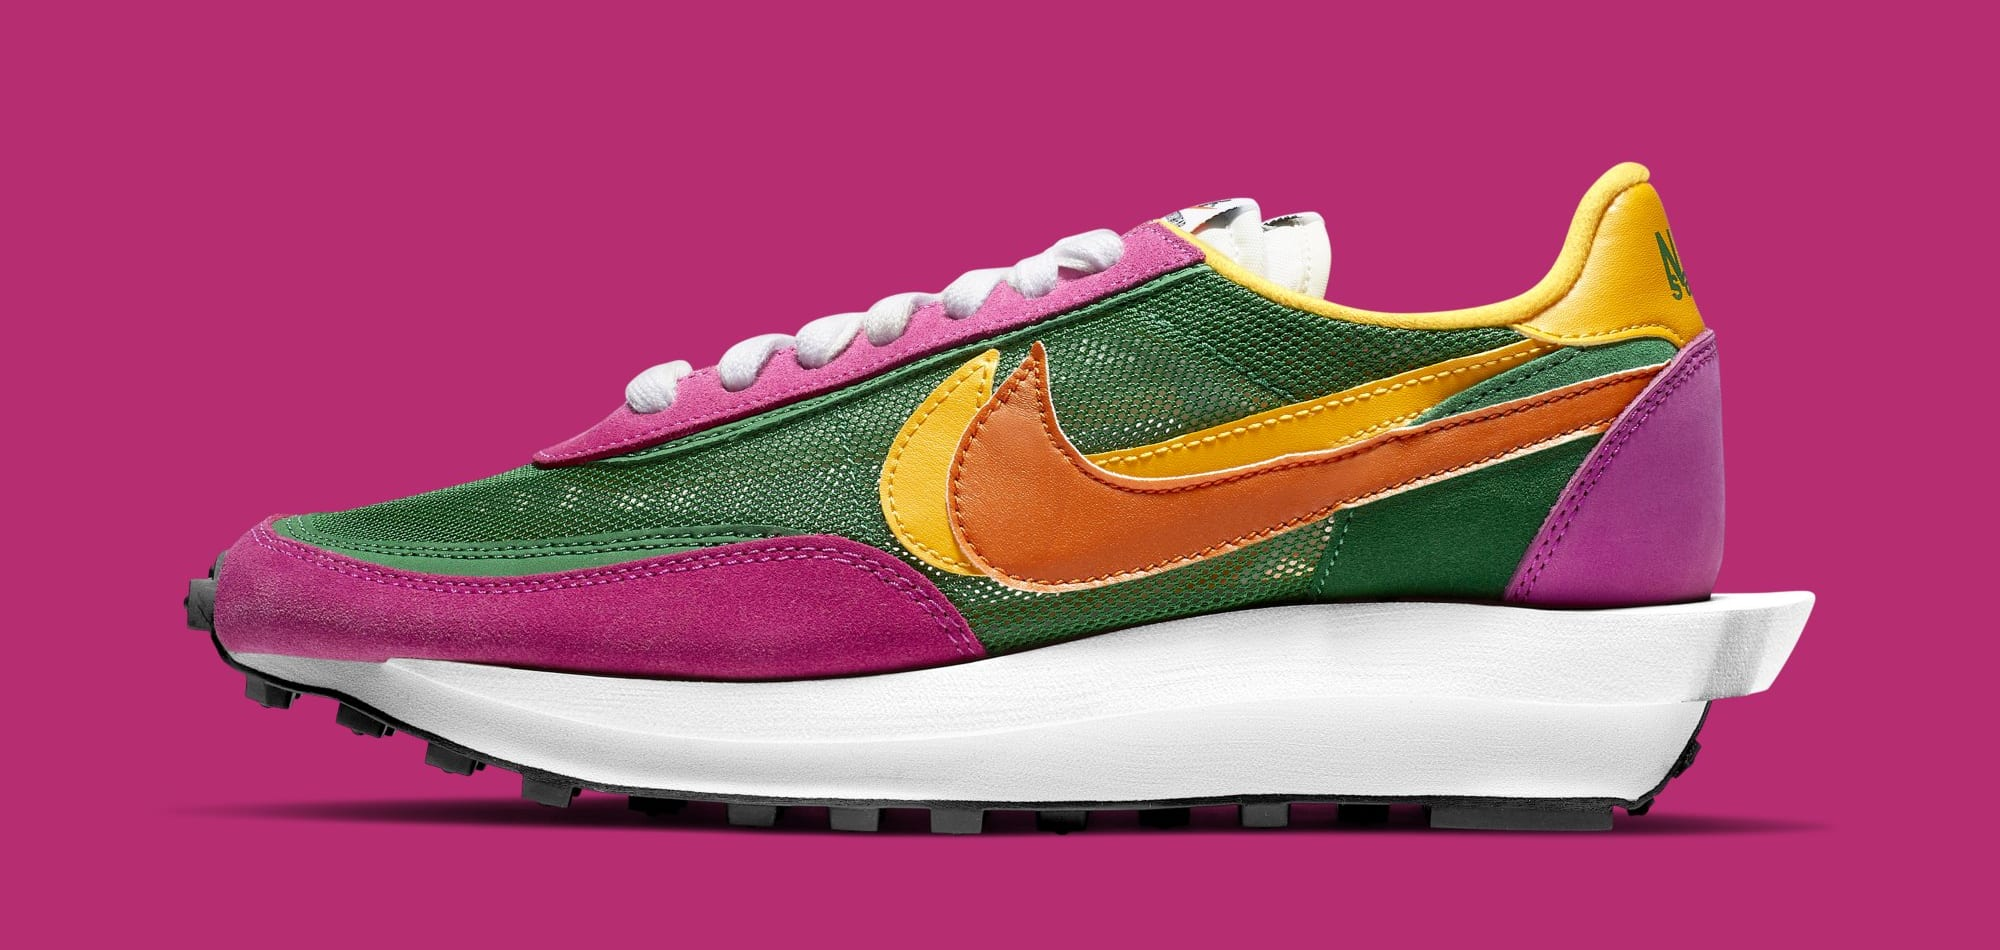 Another Colorful Sacai x Nike LDWaffle Is On the Way